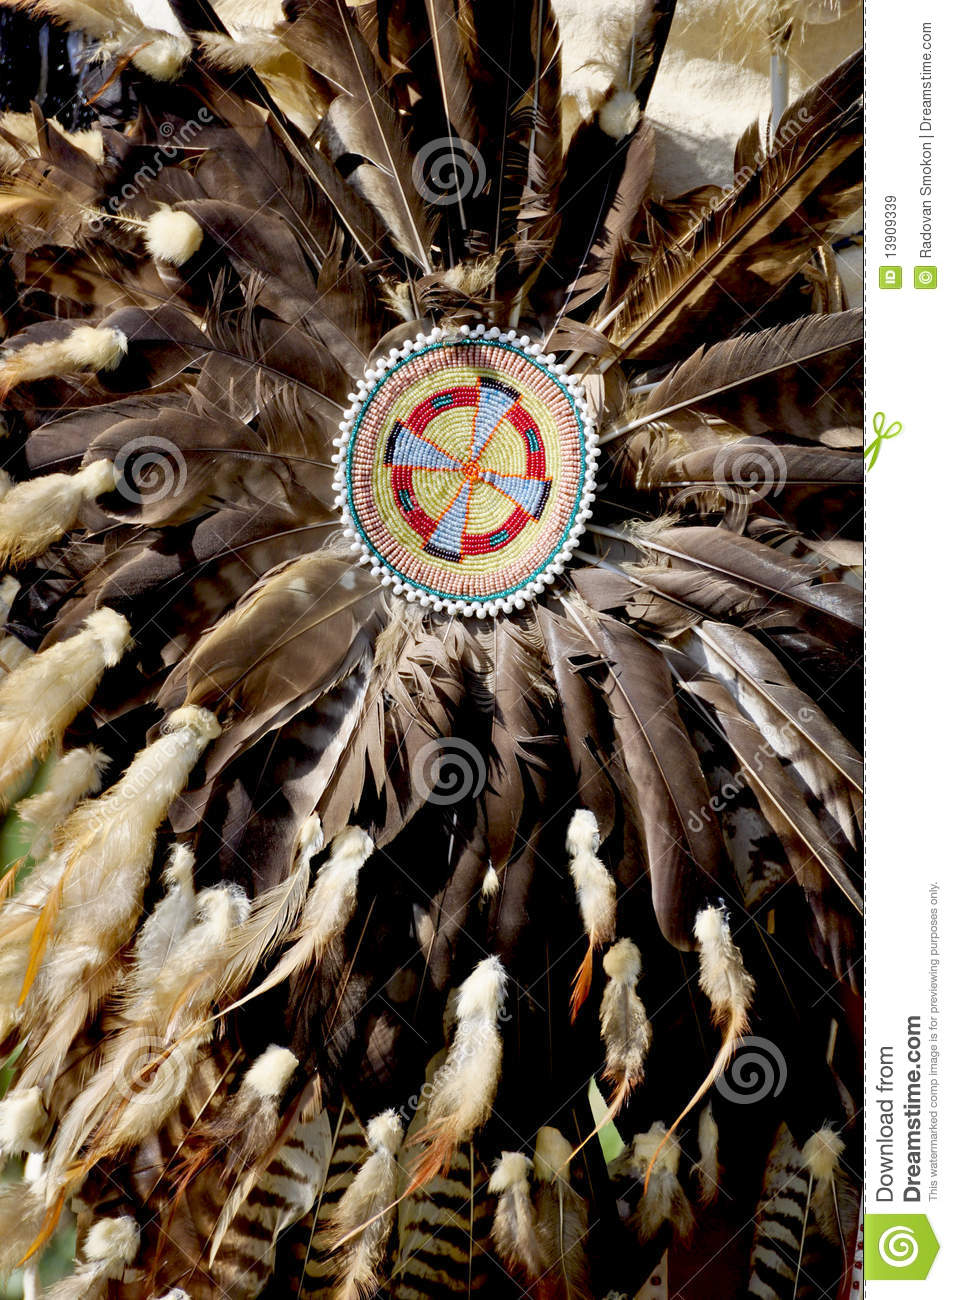 Native American Decorations Stock Image - Image of pageant